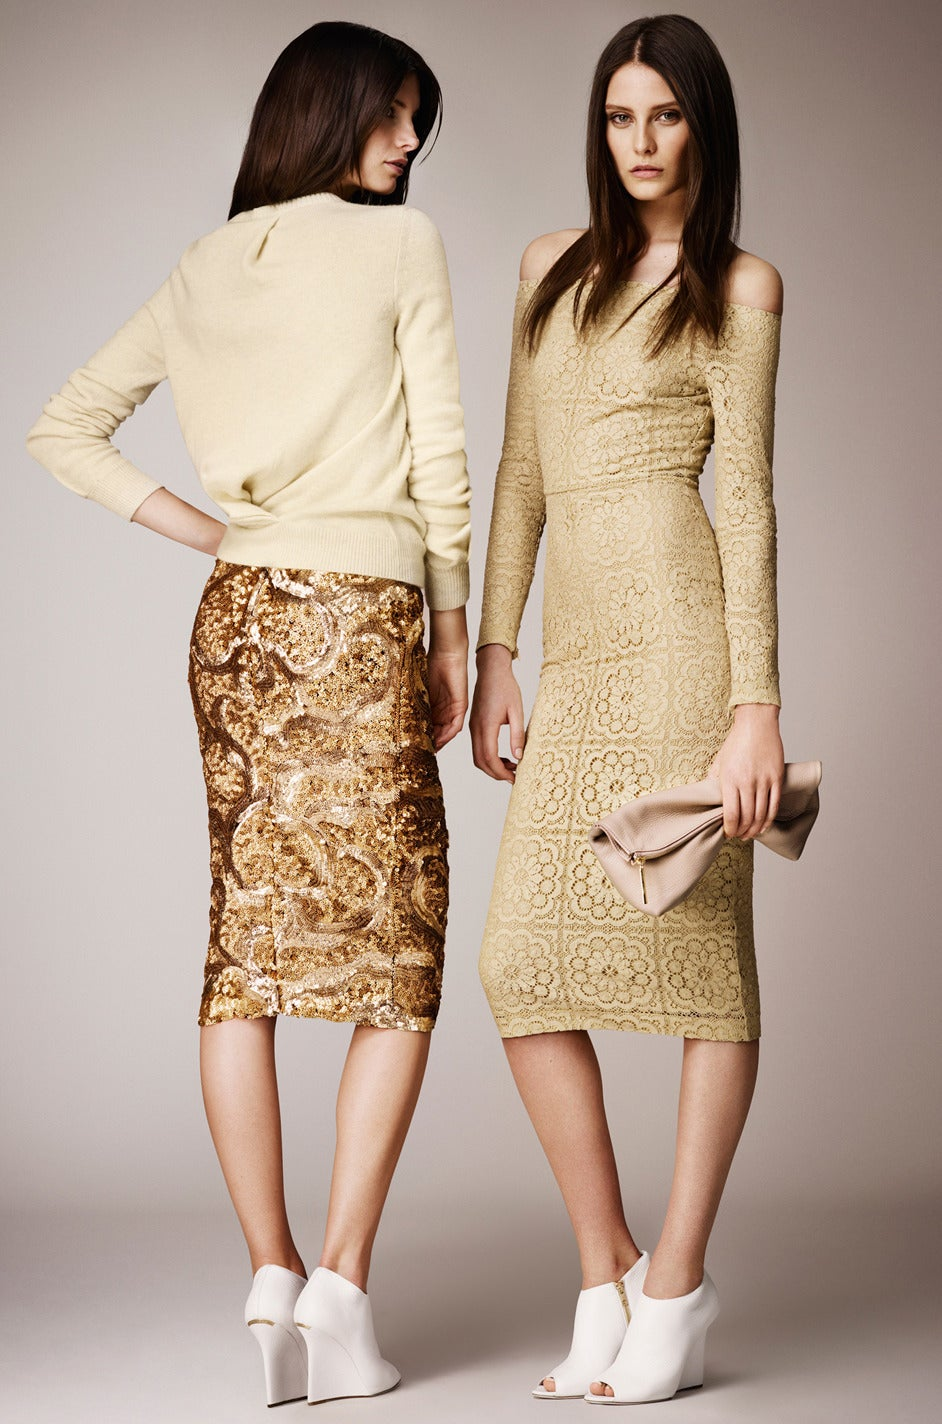 Resort 2014 Burberry Prorsum Hammered Gold Sequin Skirt For Sale 1